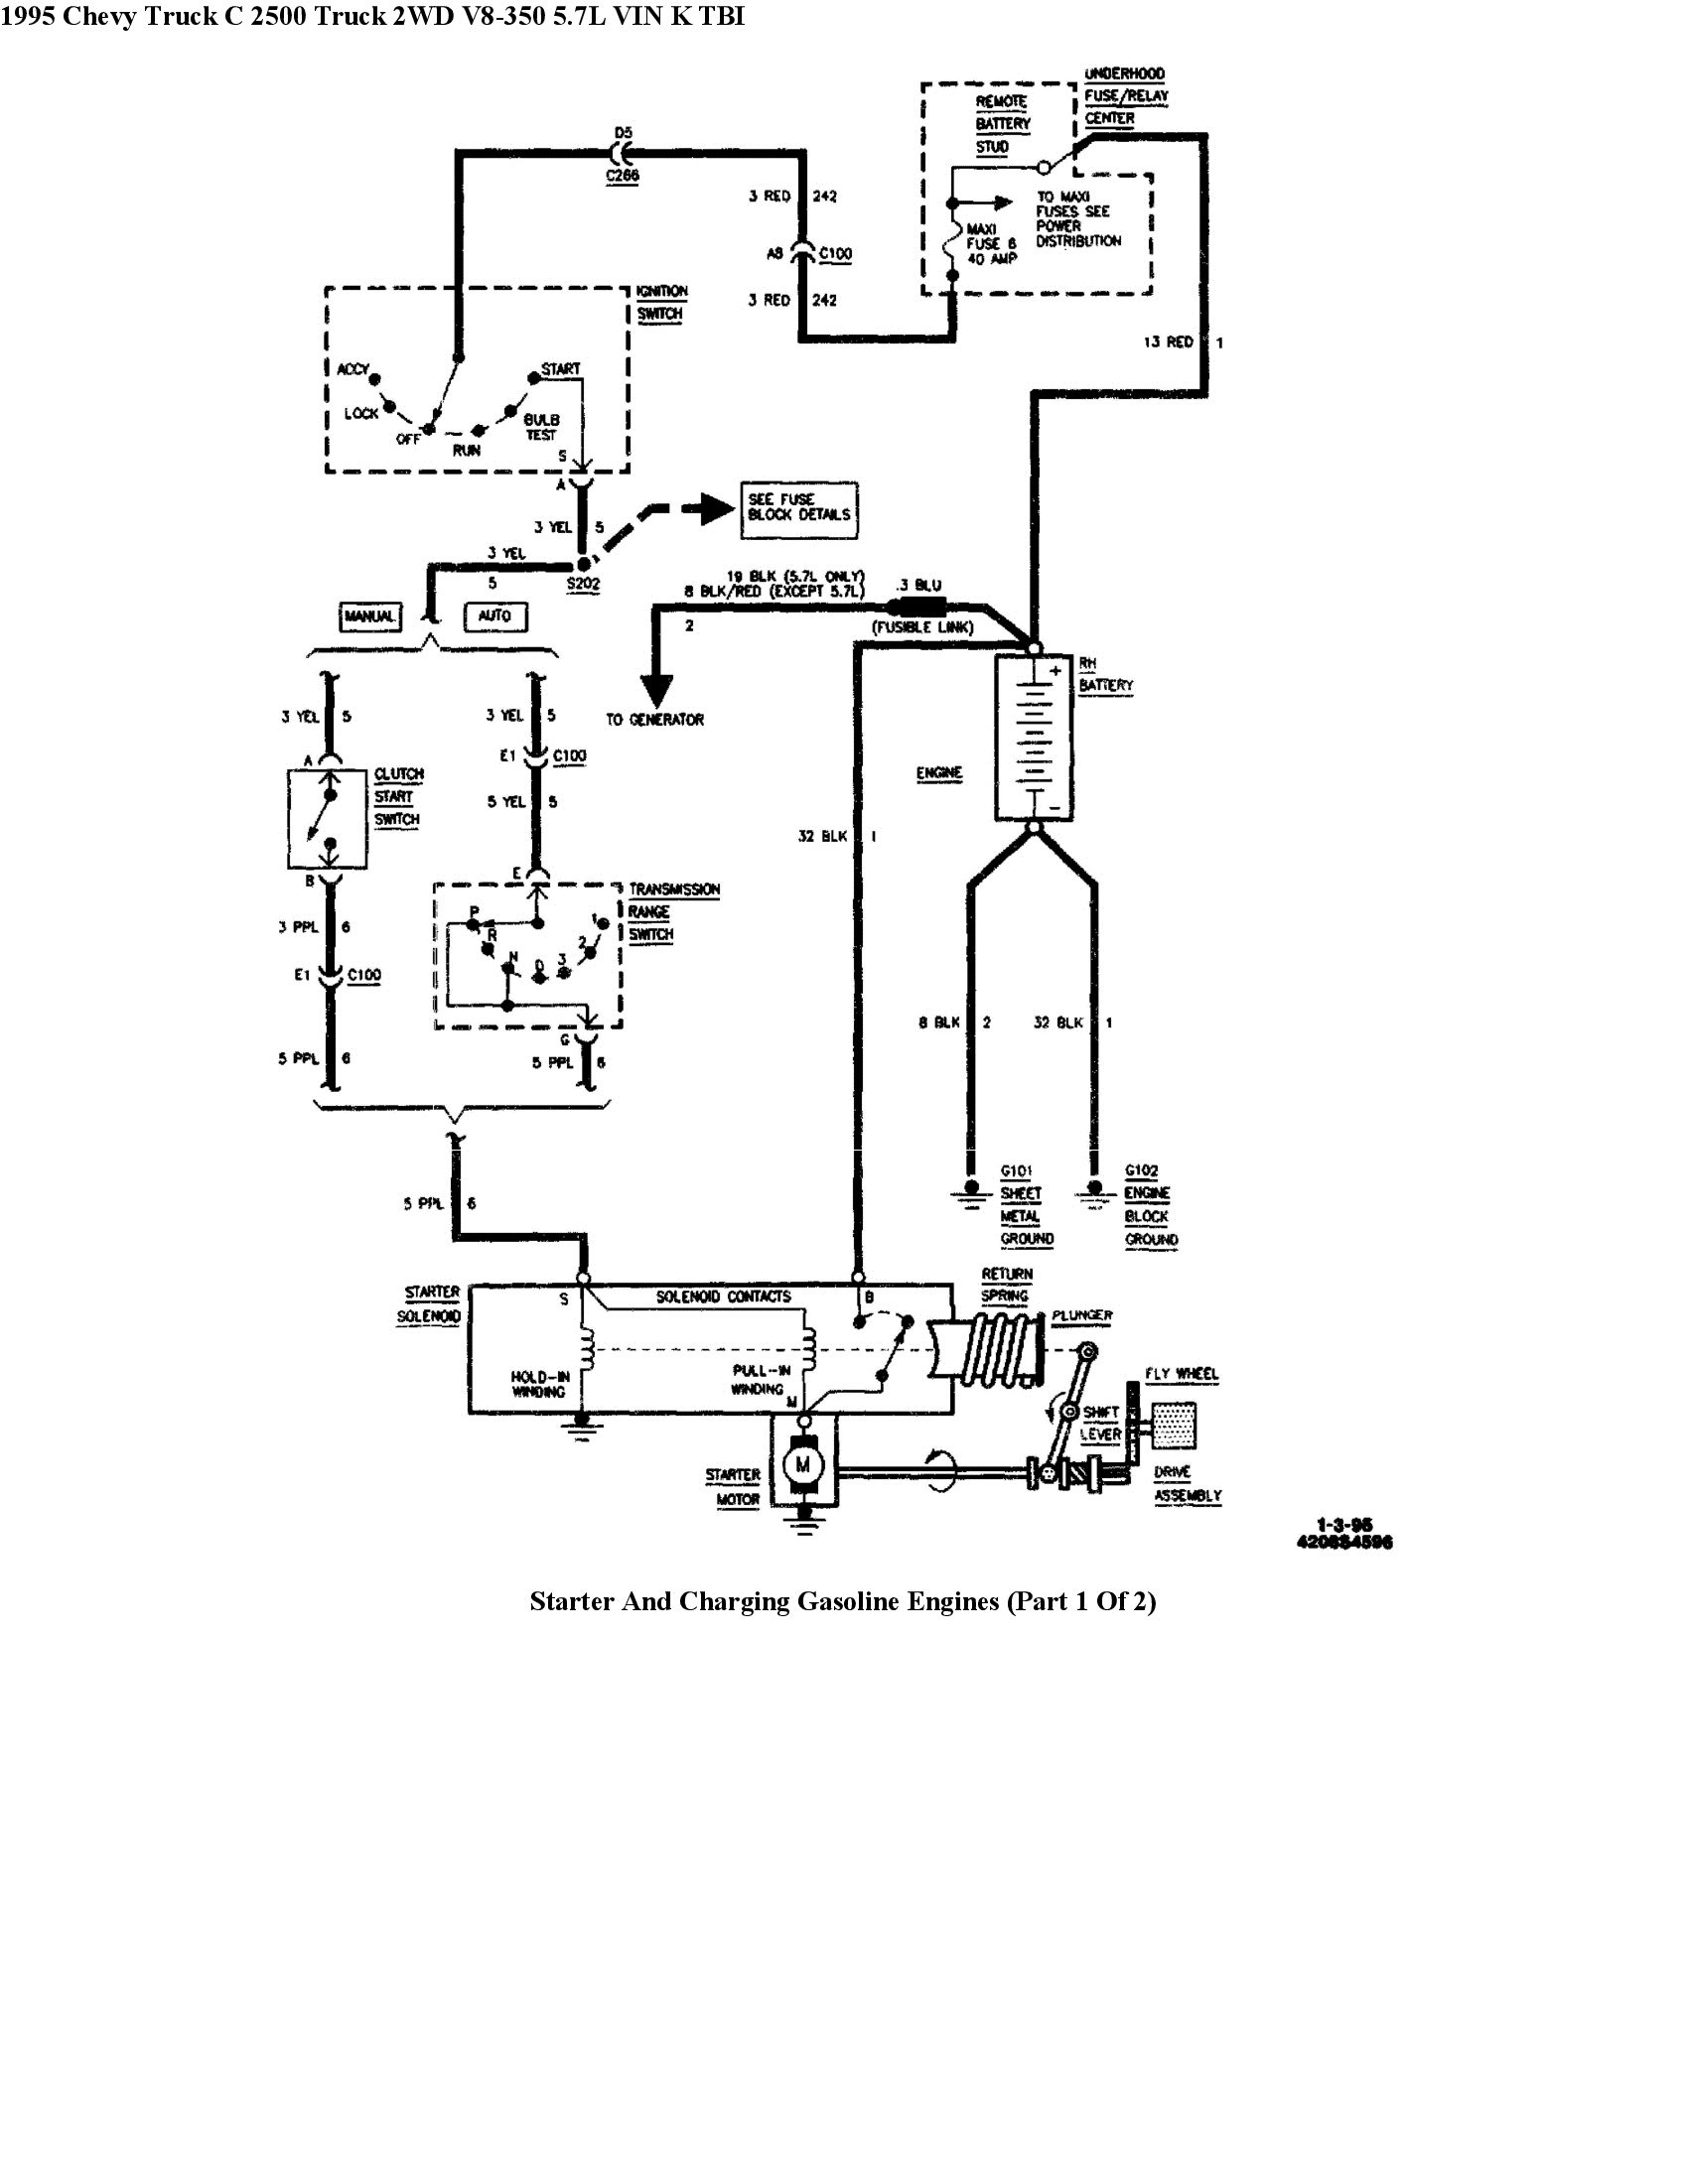 Wiring Diagram For A Brake Controller On A Chevy